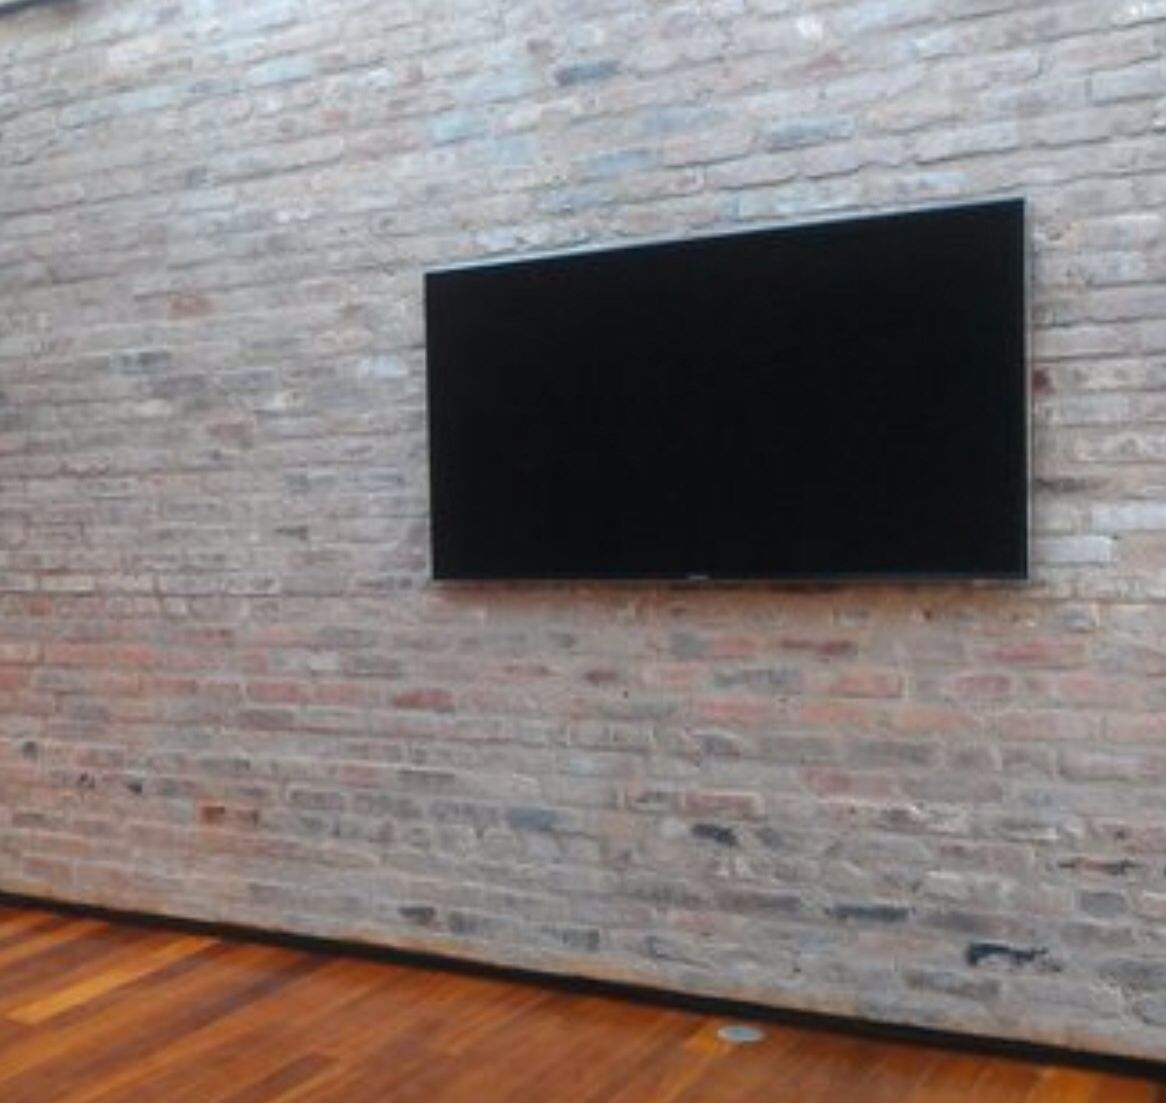 Tv Mounted On Brick Wall With No Visible Cables